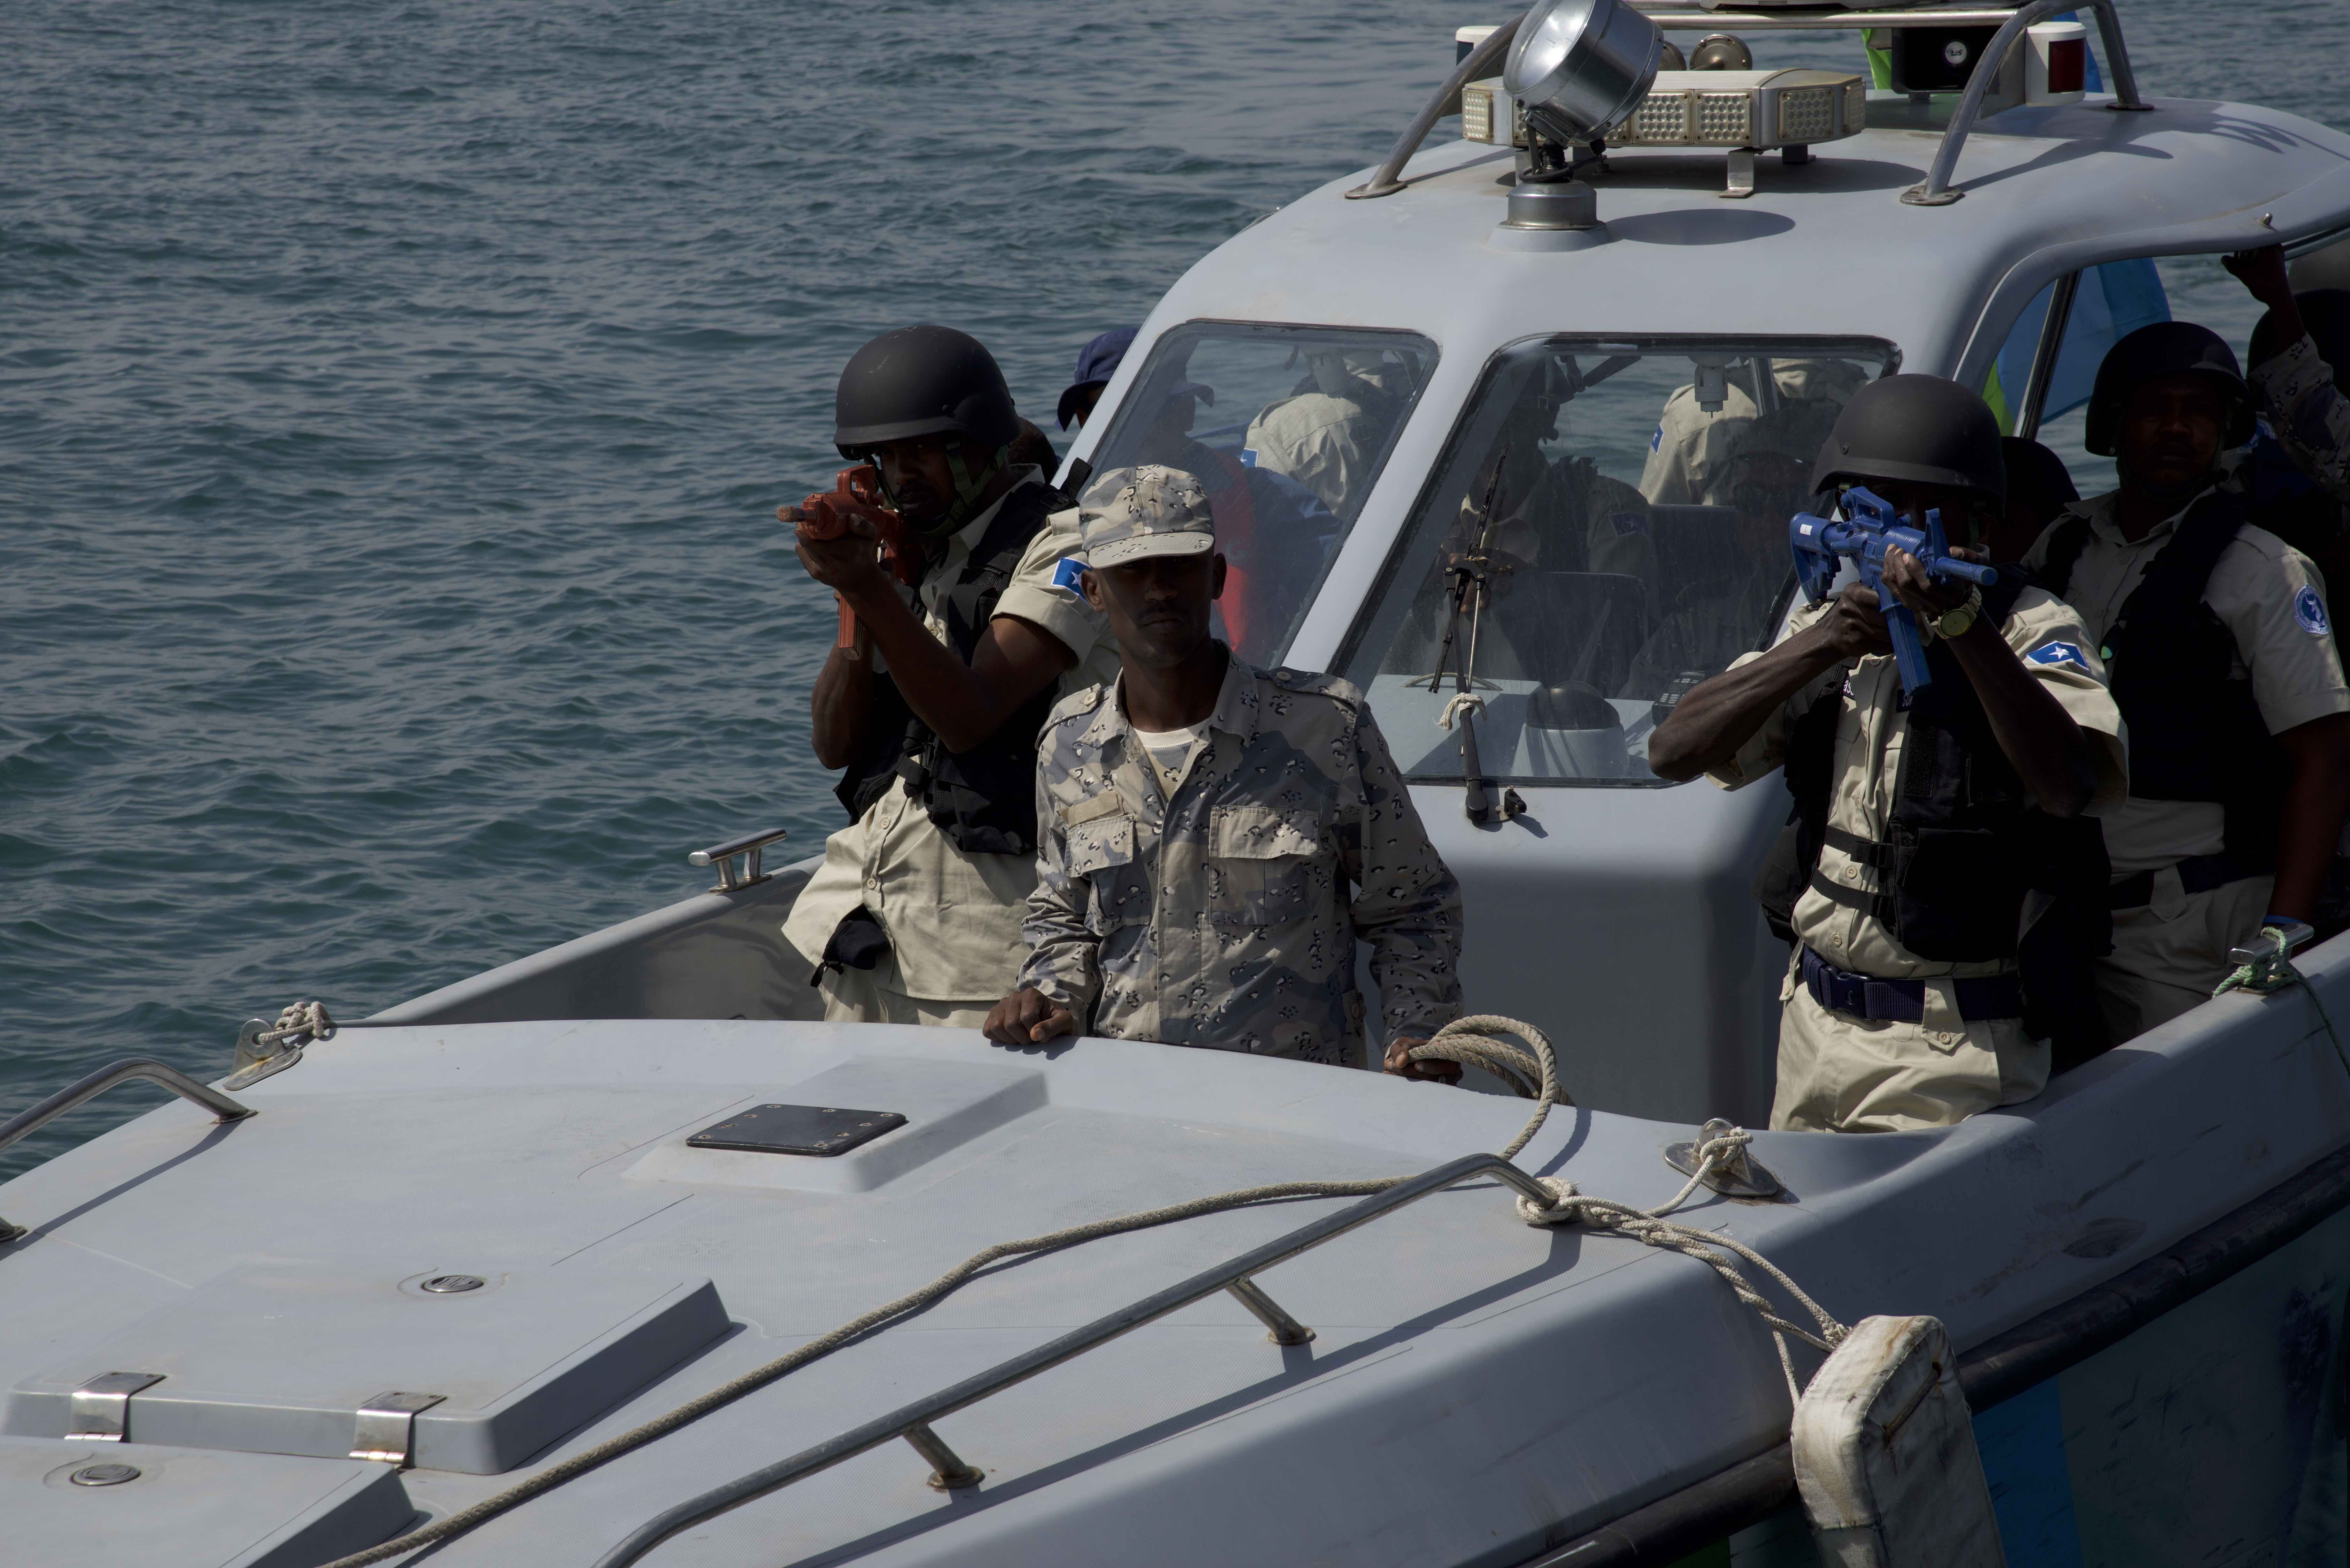 Members of the Somali maritime police and Djibouti coast guard participate in a visit, board, search and seizure drill (VBSS) during exercise Cutlass Express 2018 in the Port of Djibouti Feb. 5, 2018. Cutlass Express is designed to improve cooperation, maritime domain awareness and information sharing practices to increase capabilities between the U.S., East African and Western Indian Ocean nations. (U.S. Air National Guard photo by Staff Sgt. Allyson Manners)